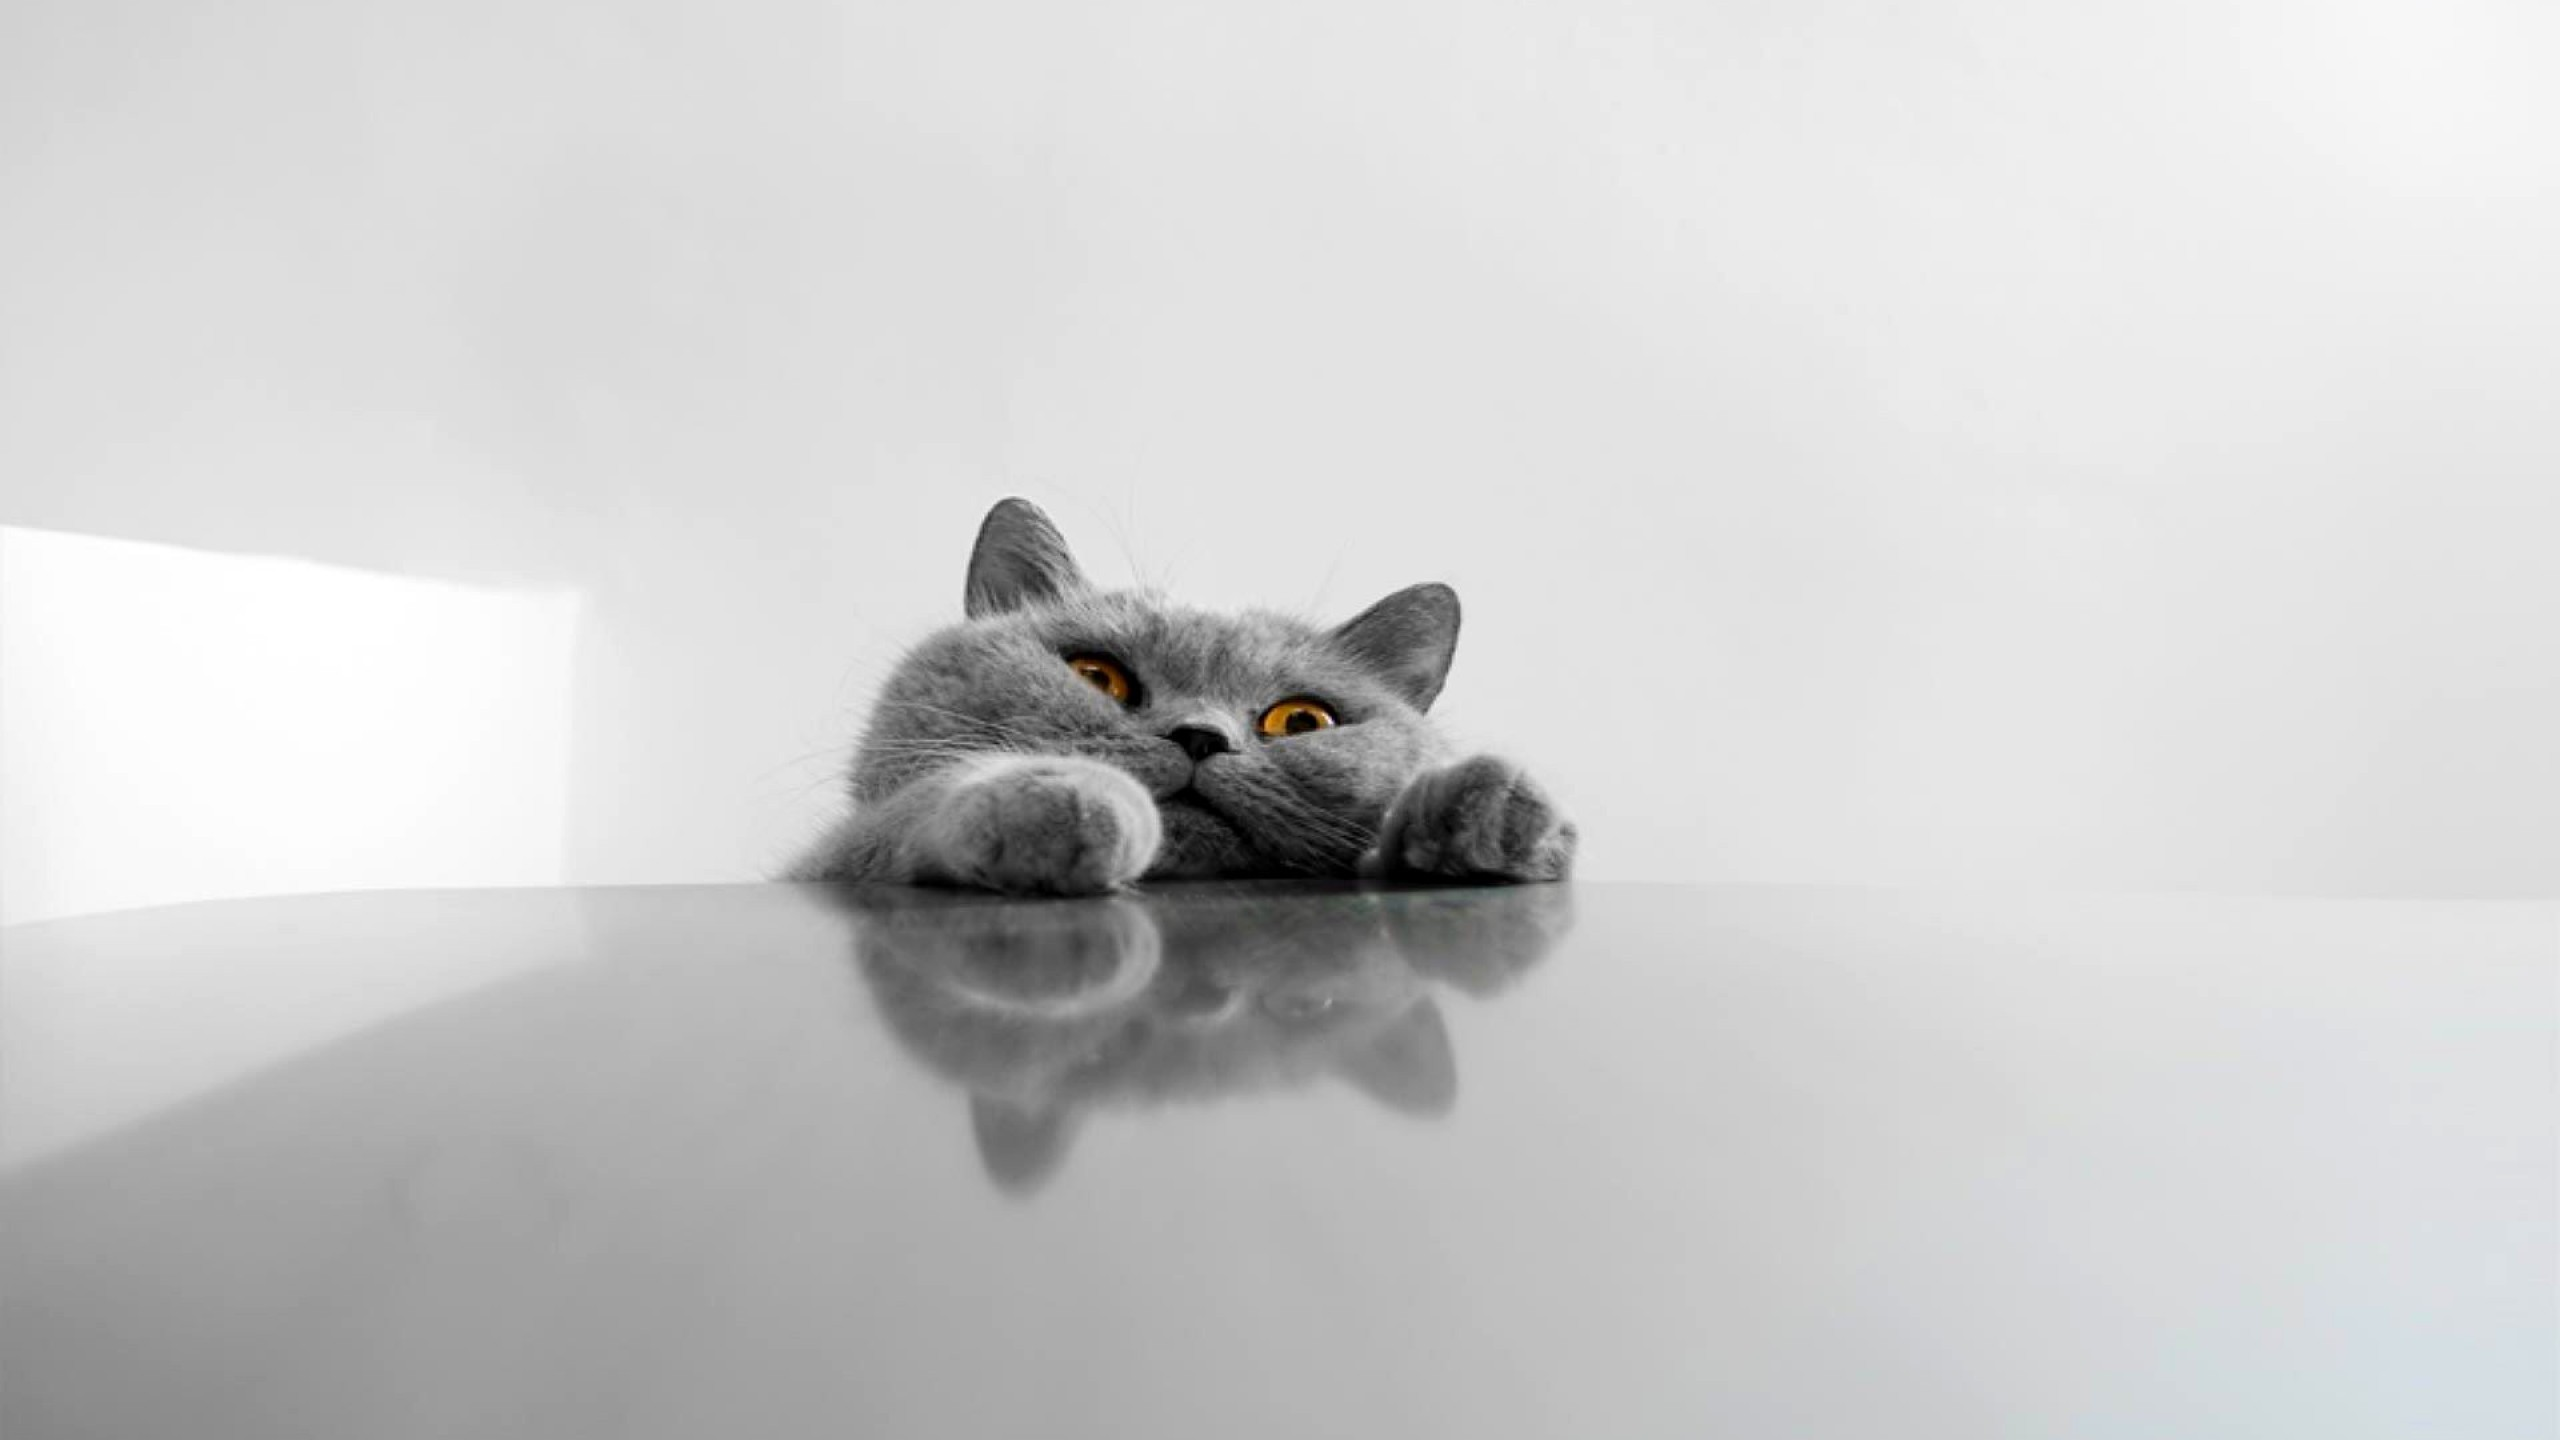 … wallpaper 19592 baltana; funny cat wallpapers pictures images …